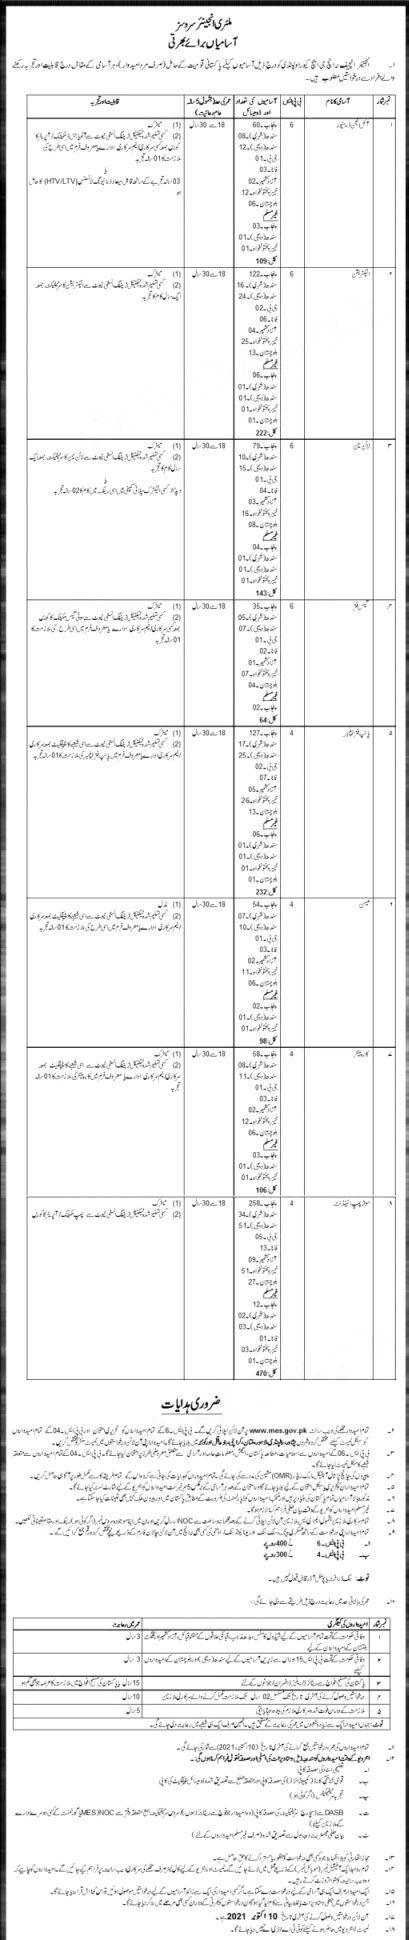 MES Military Engineering Services Pakistan Army Jobs 2021 Terms and Conditions to Apply